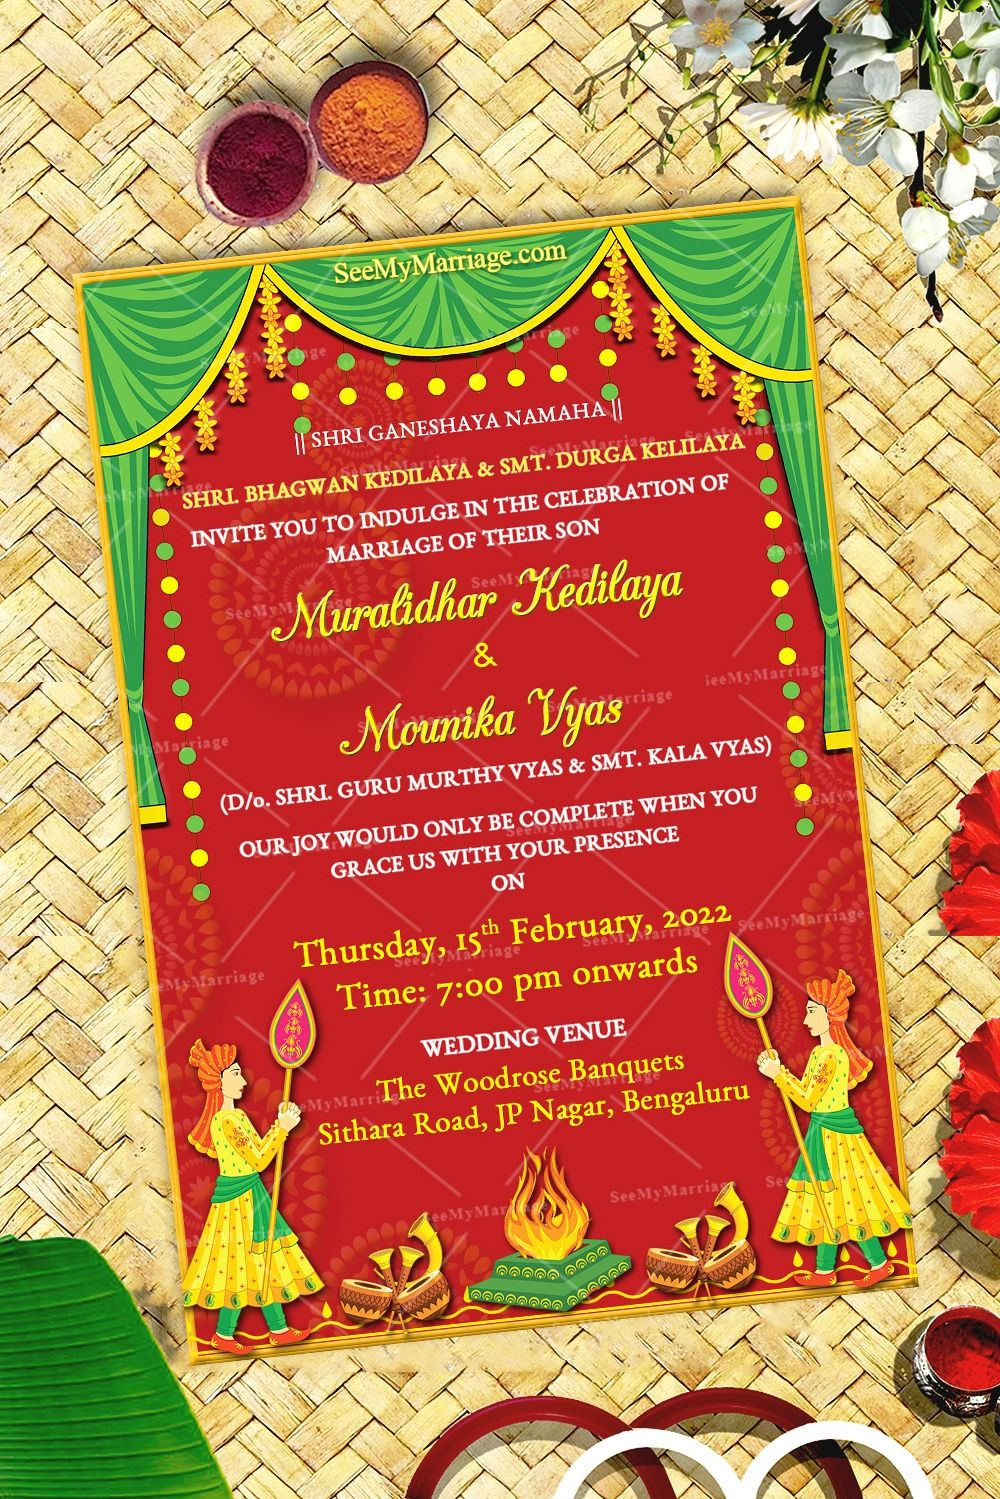 Traditional Kannada Wedding Invitation Card Red And Yellow Theme Instantly Editable Green Themed Wedding Digital Wedding Invitations Hindu Wedding Cards